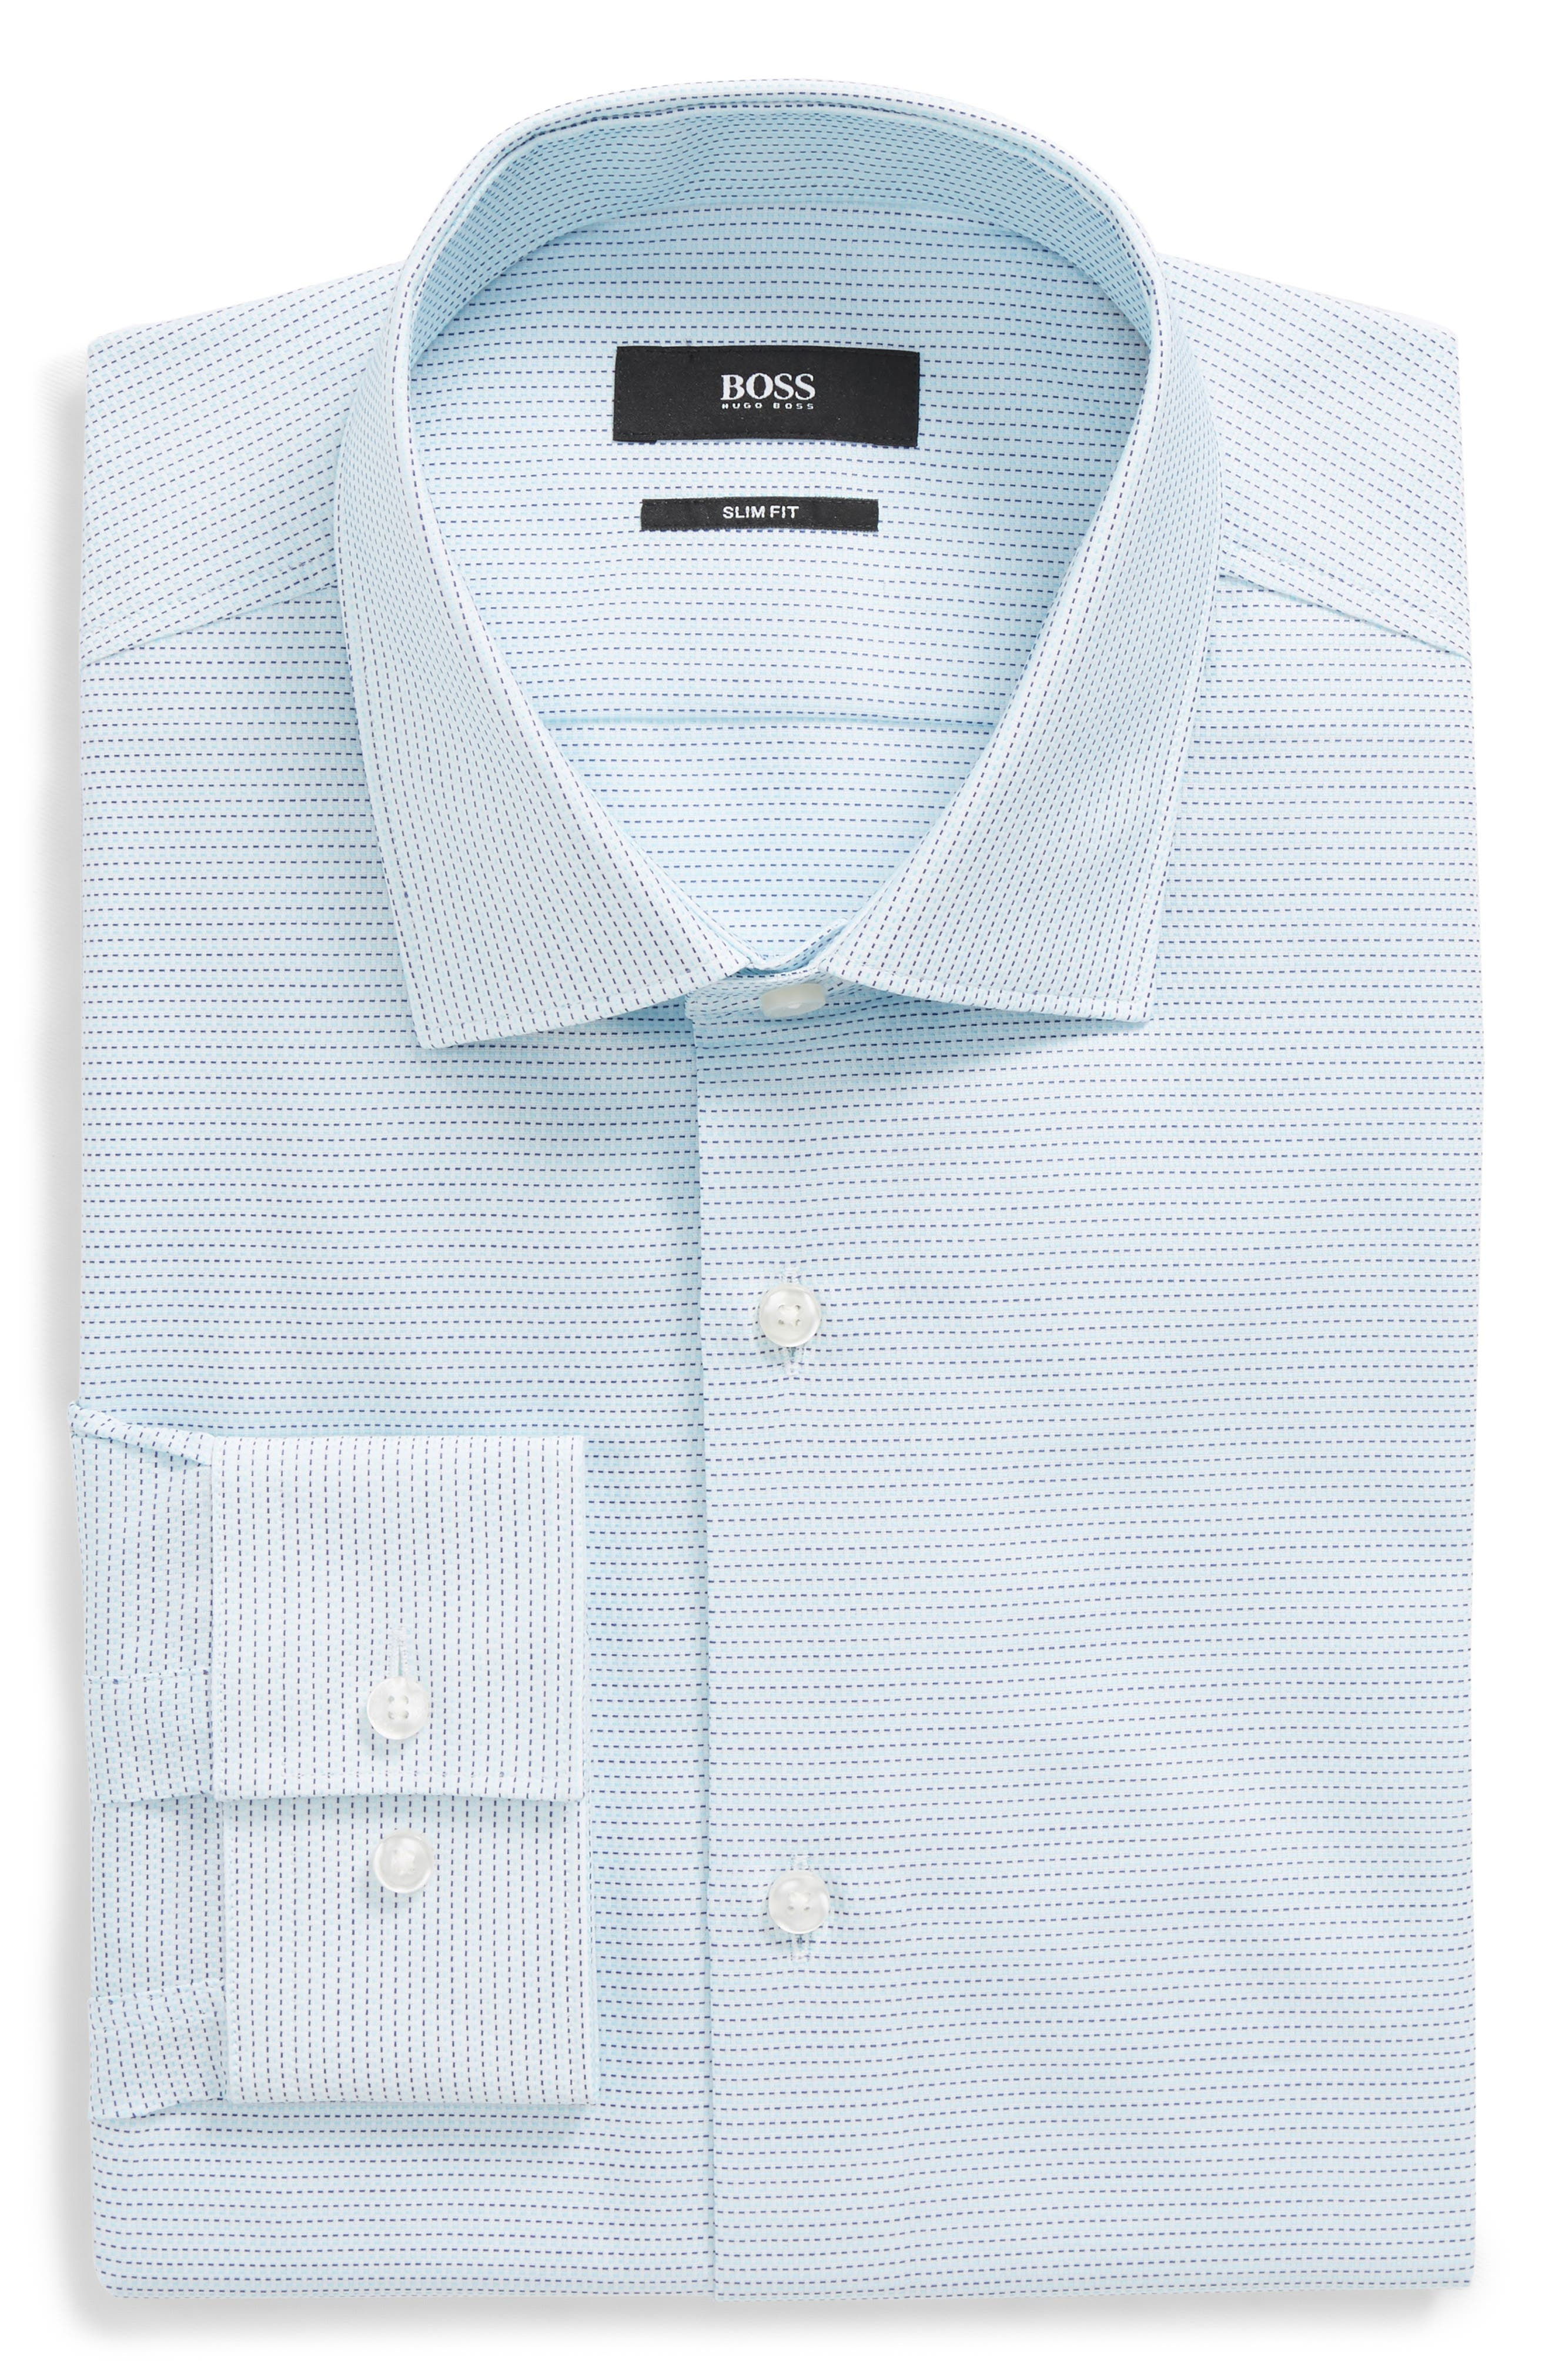 Ismo Slim Fit Solid Dress Shirt,                         Main,                         color, 435